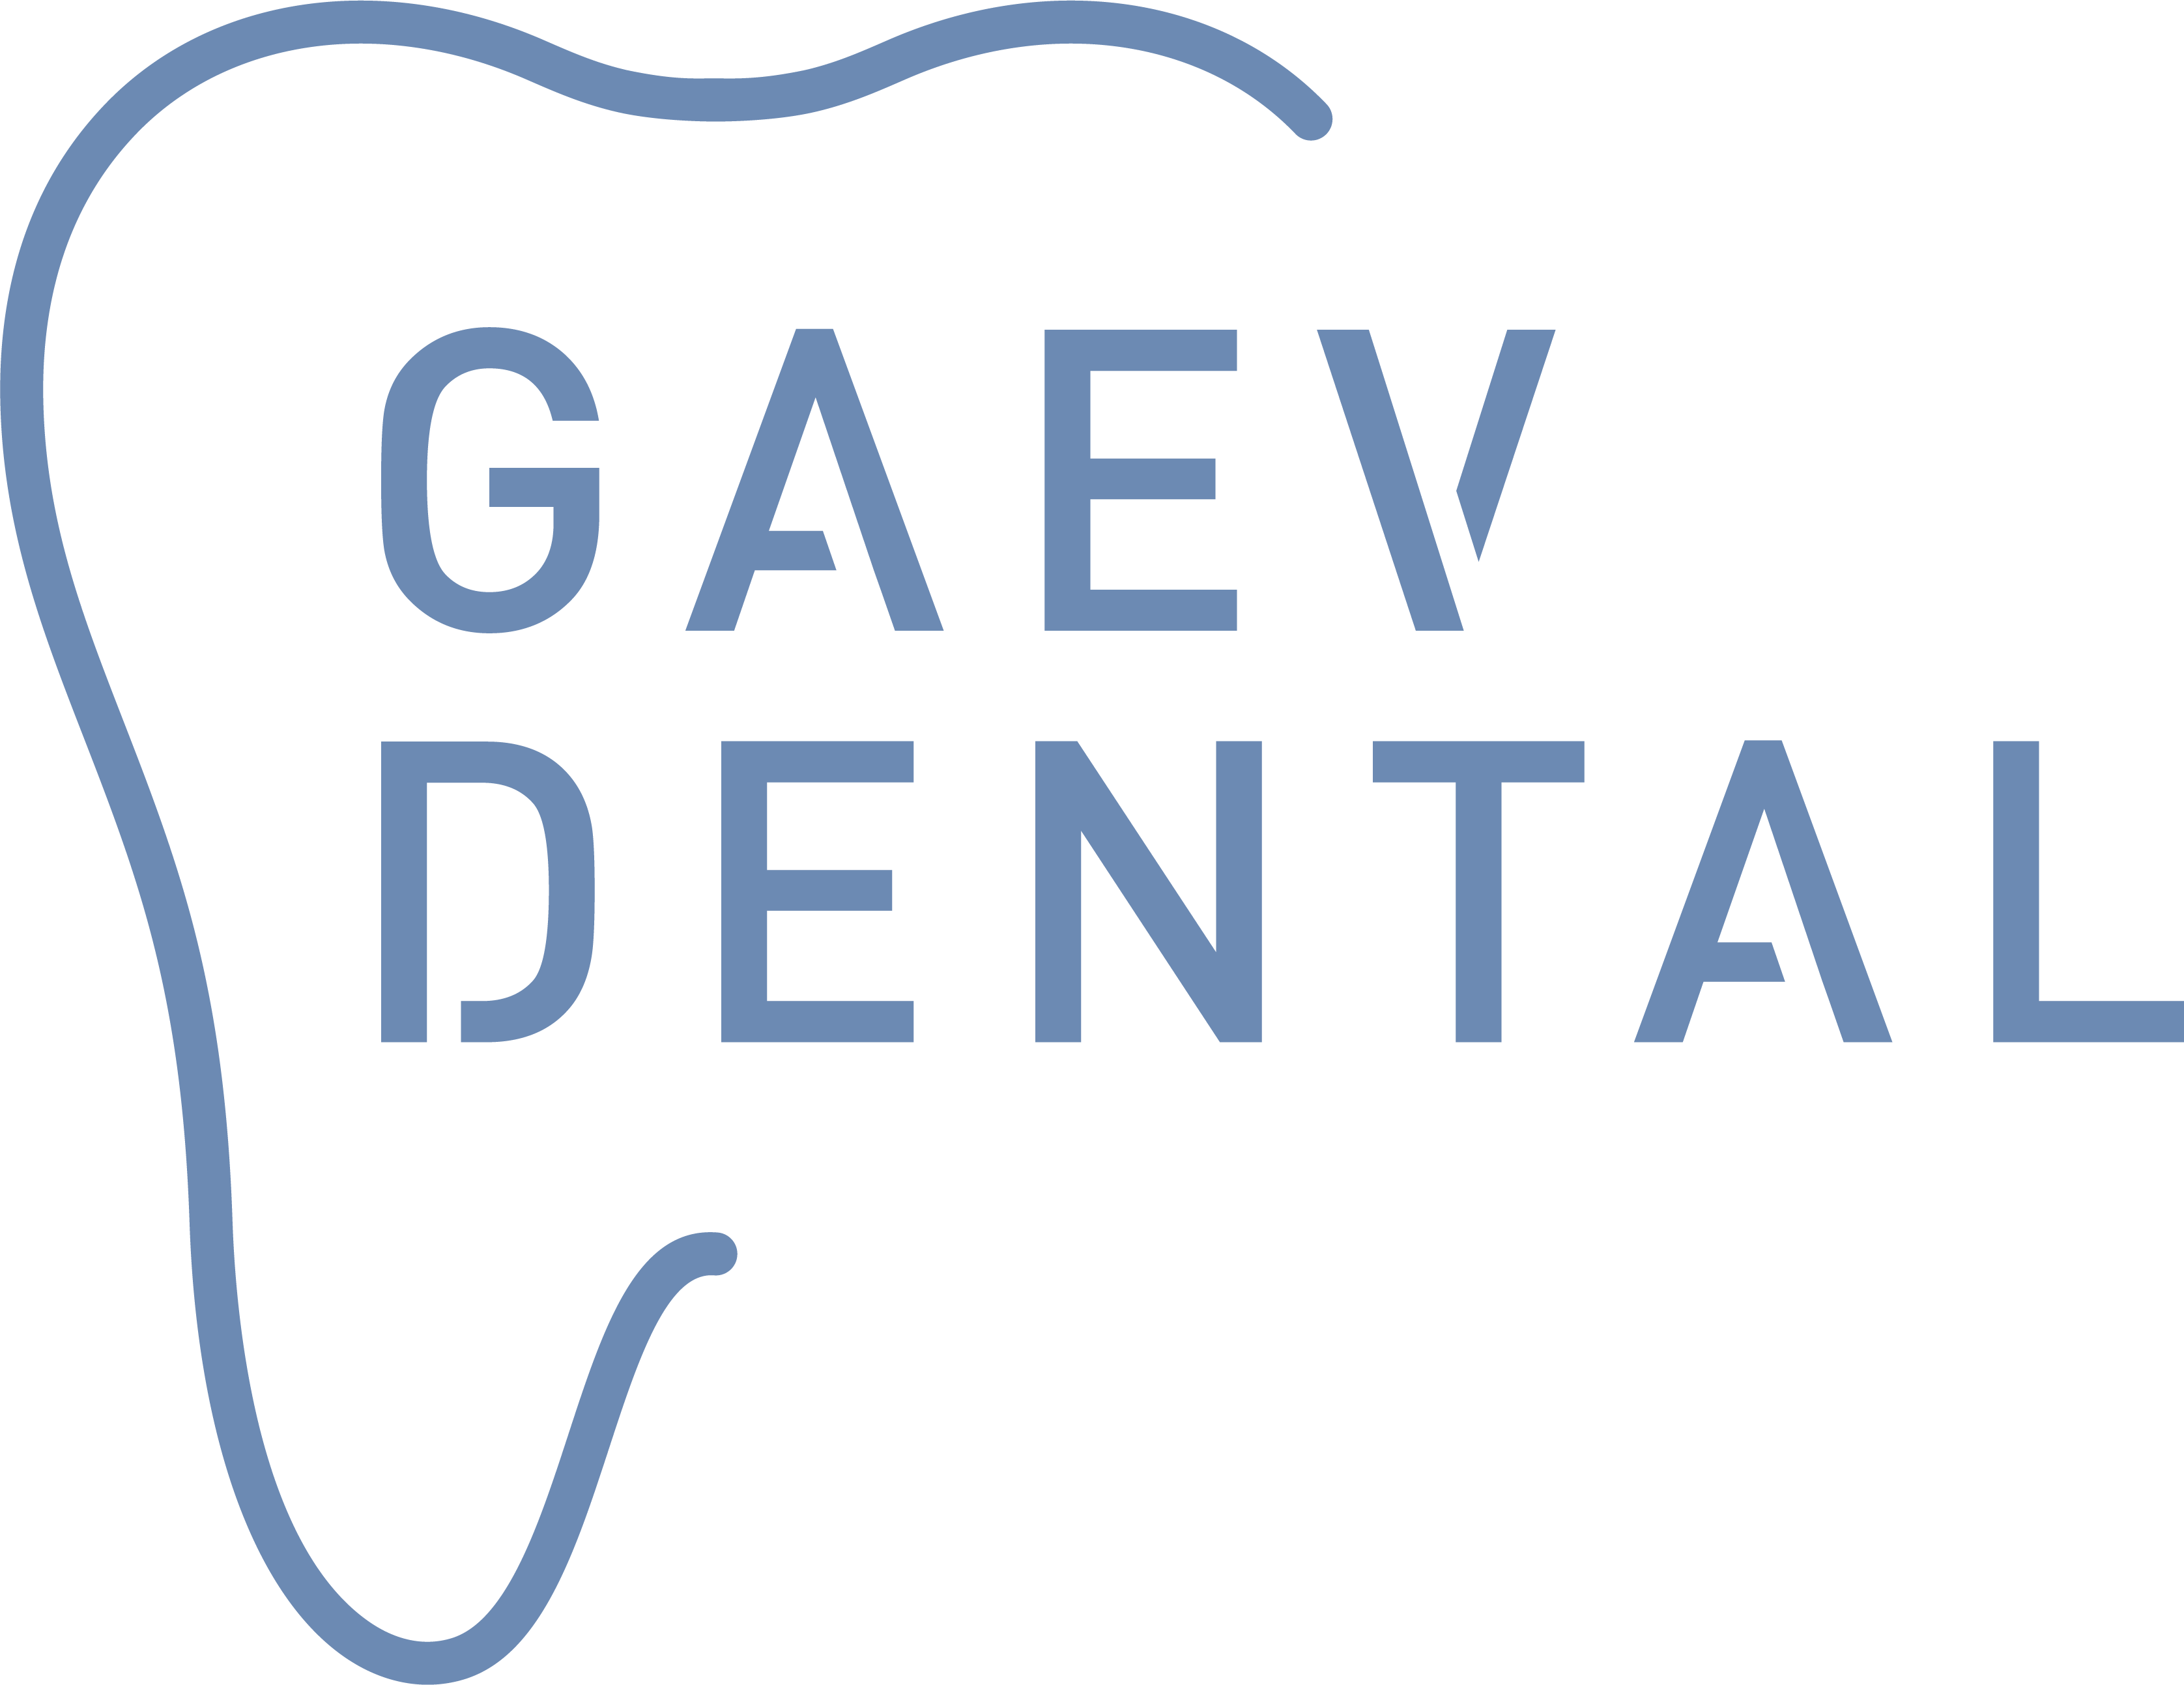 GAEV Dental